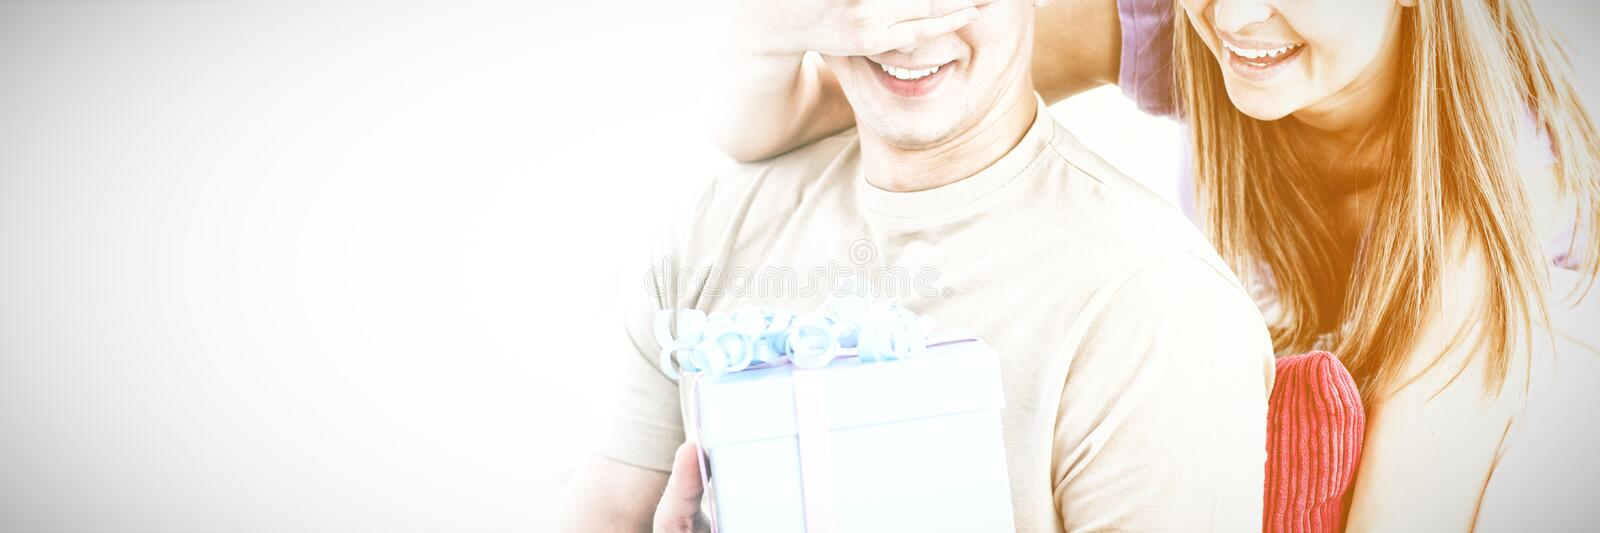 Smiling woman giving a present to her boyfriend stock photo